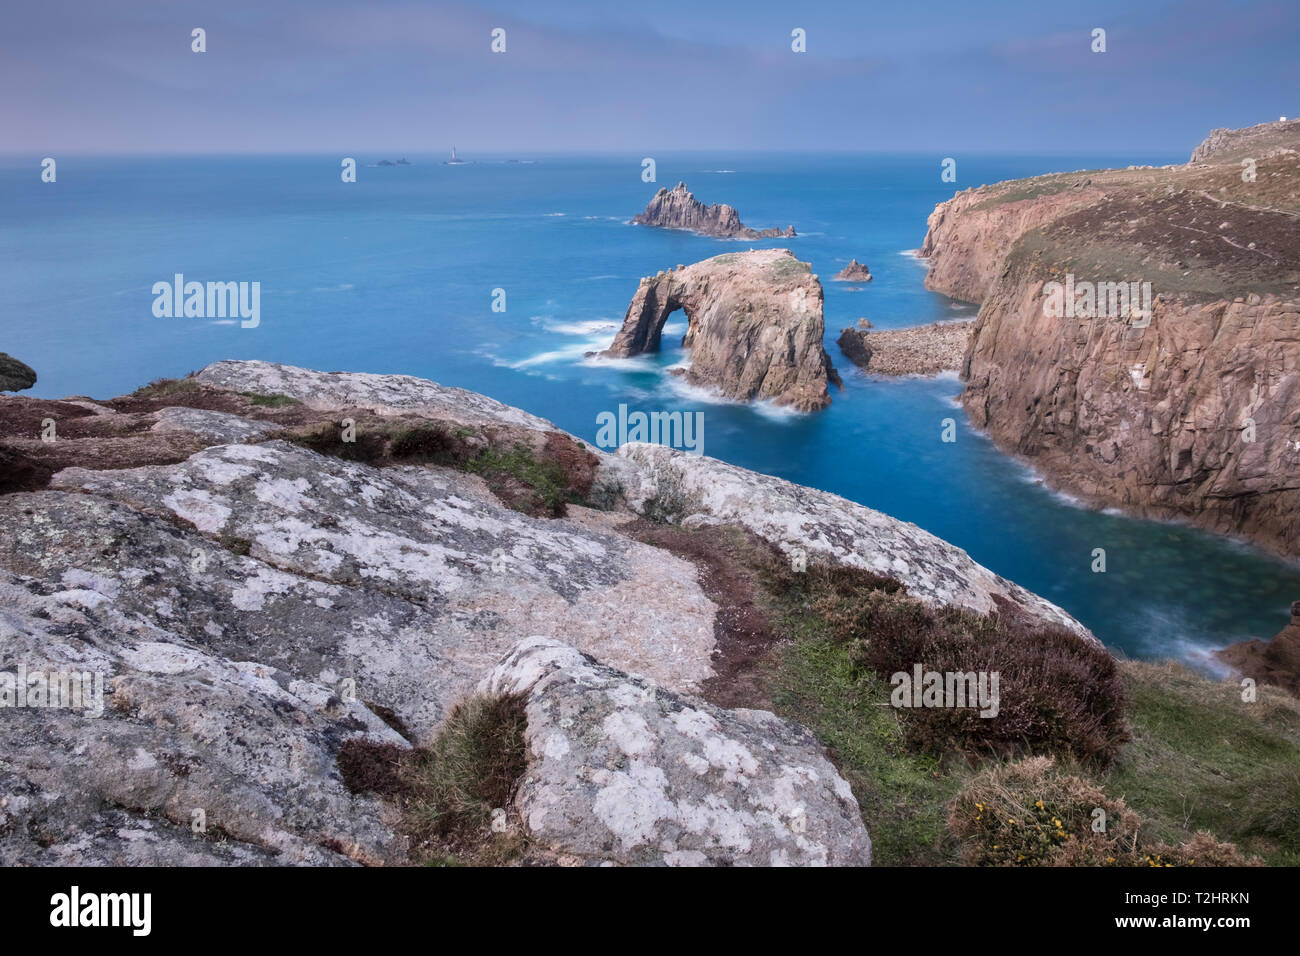 Dramatic cliffs, sea stacks and Enys Dodnan arch on the rugged north Atlantic coast, Lands End, Cornwall, UK Stock Photo